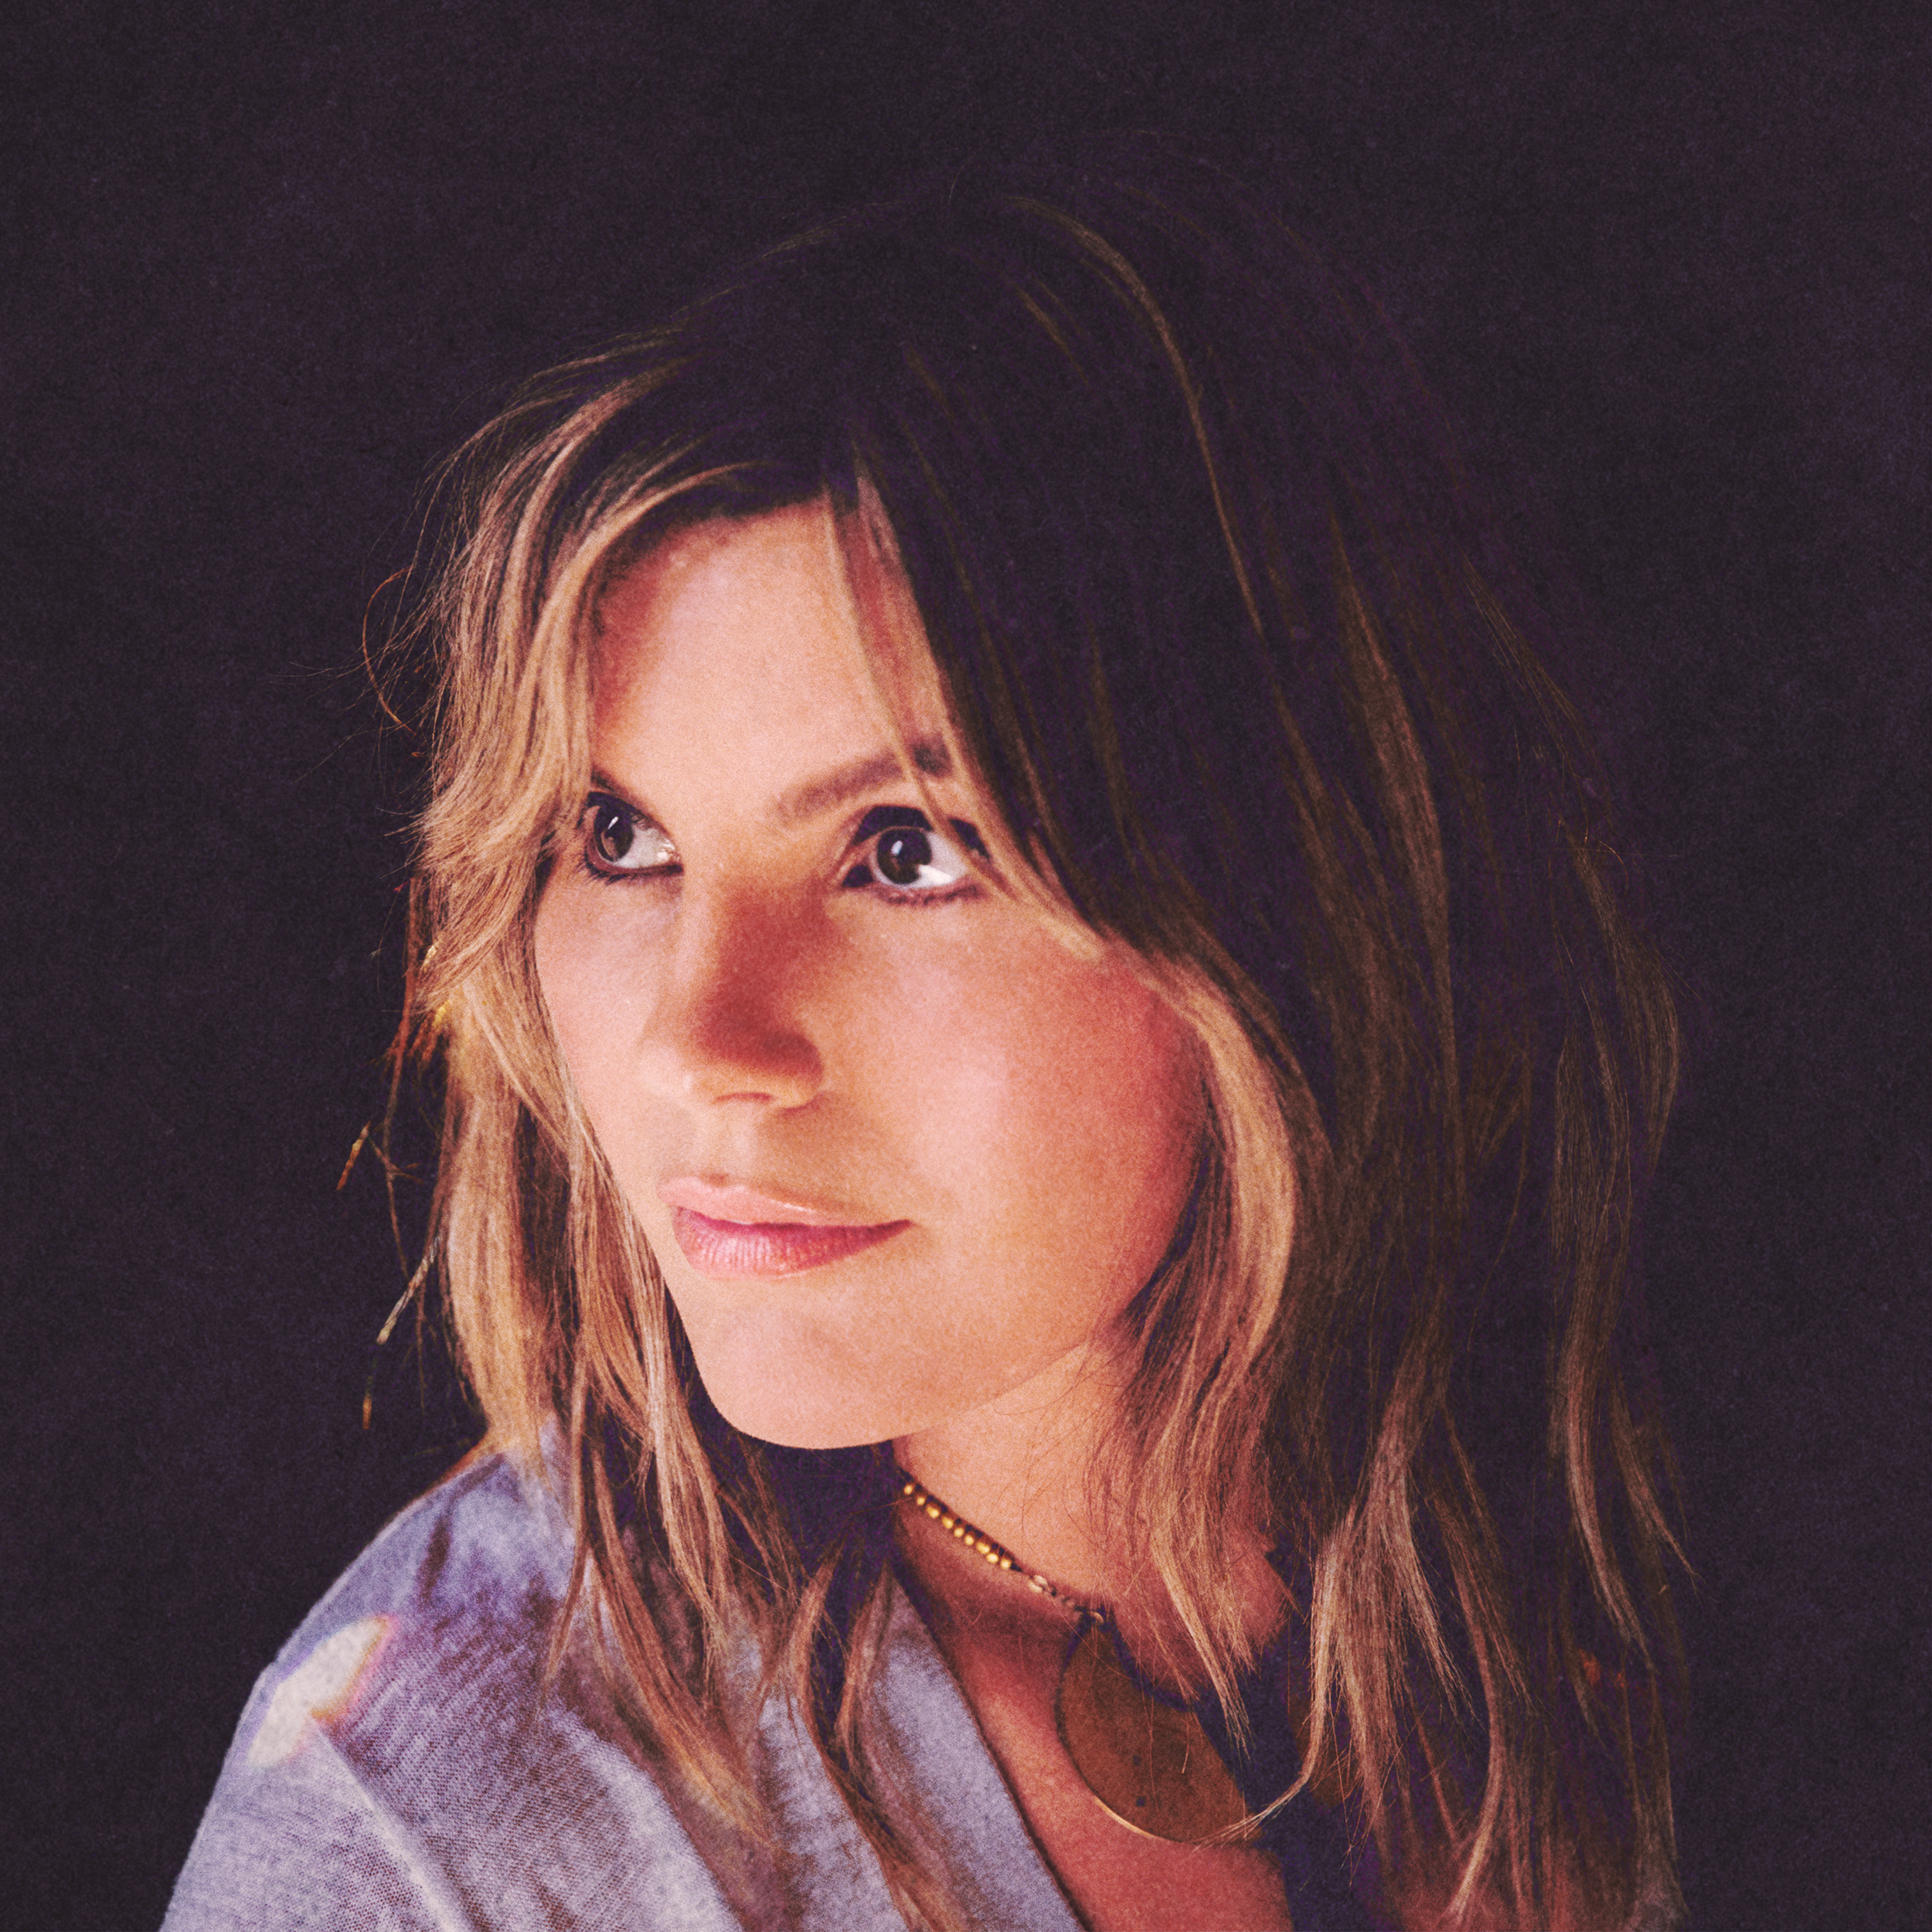 Grace-Potter-Daylight-Cover-Layered-no-text.png